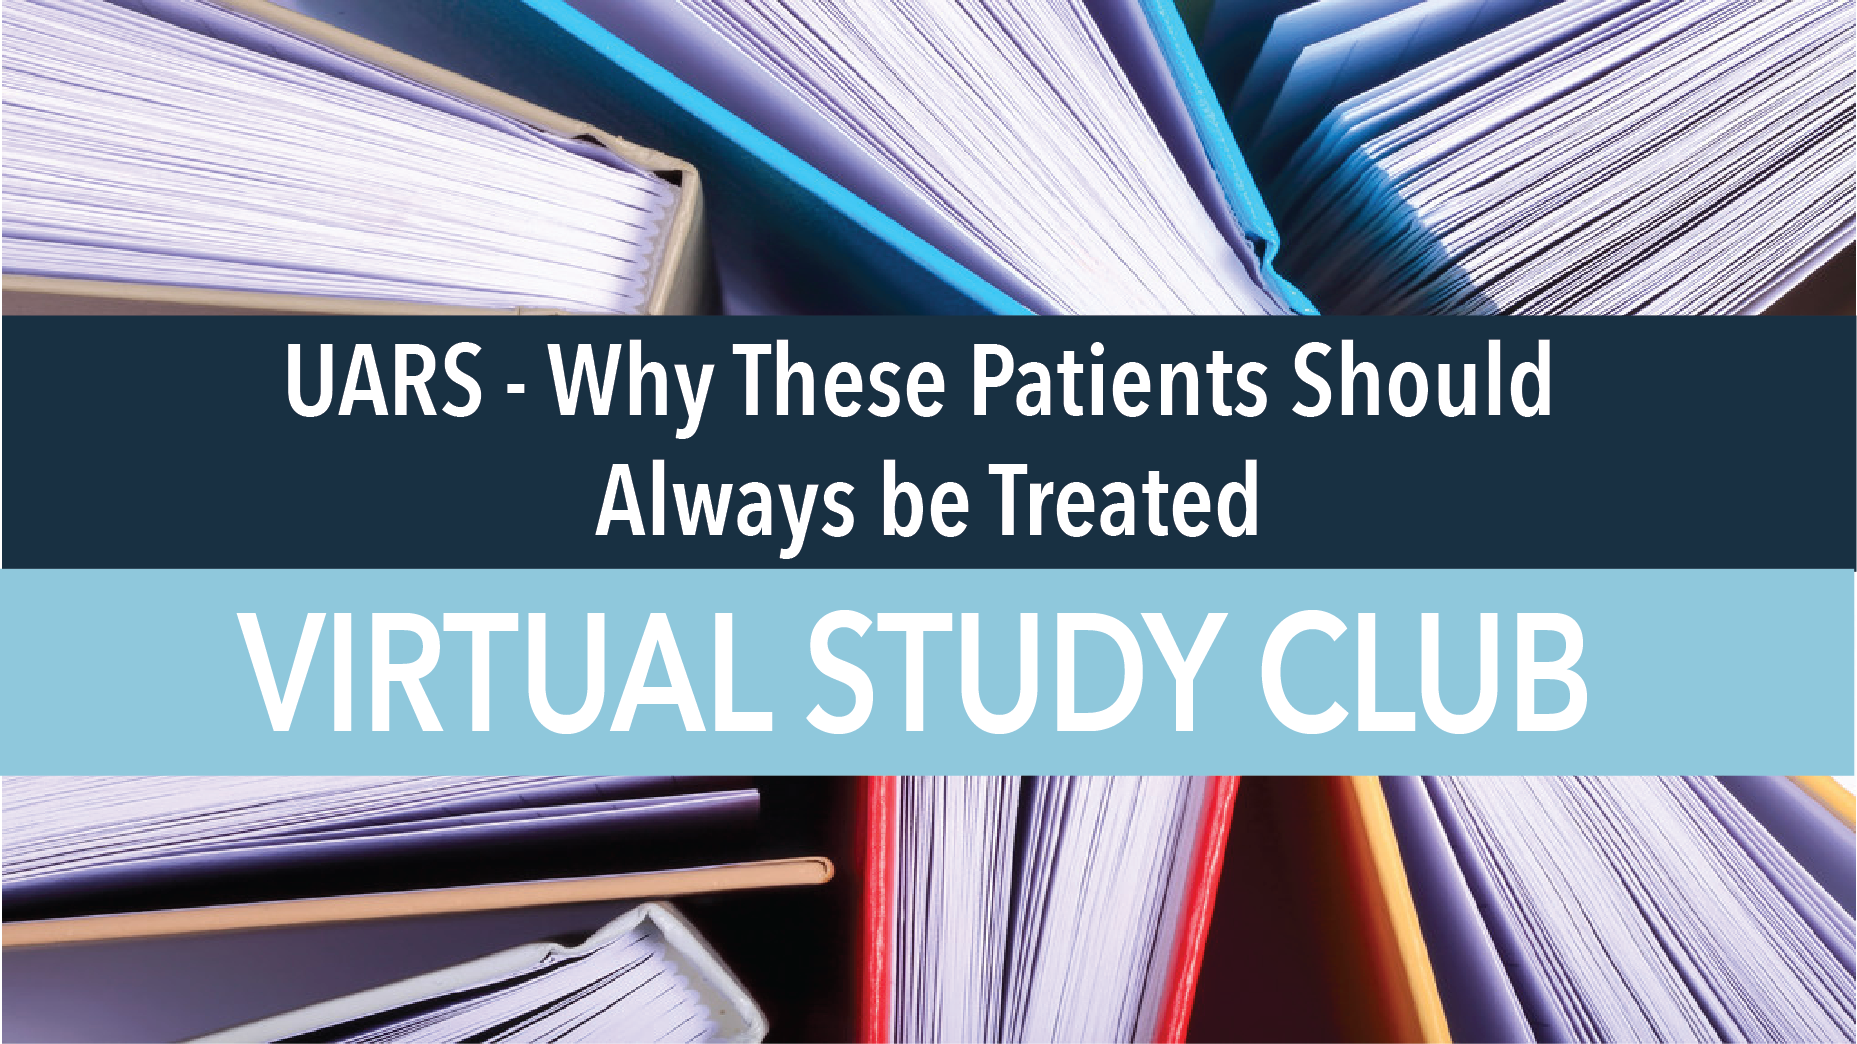 UARS - Why These Patients Should Always be Treated.png